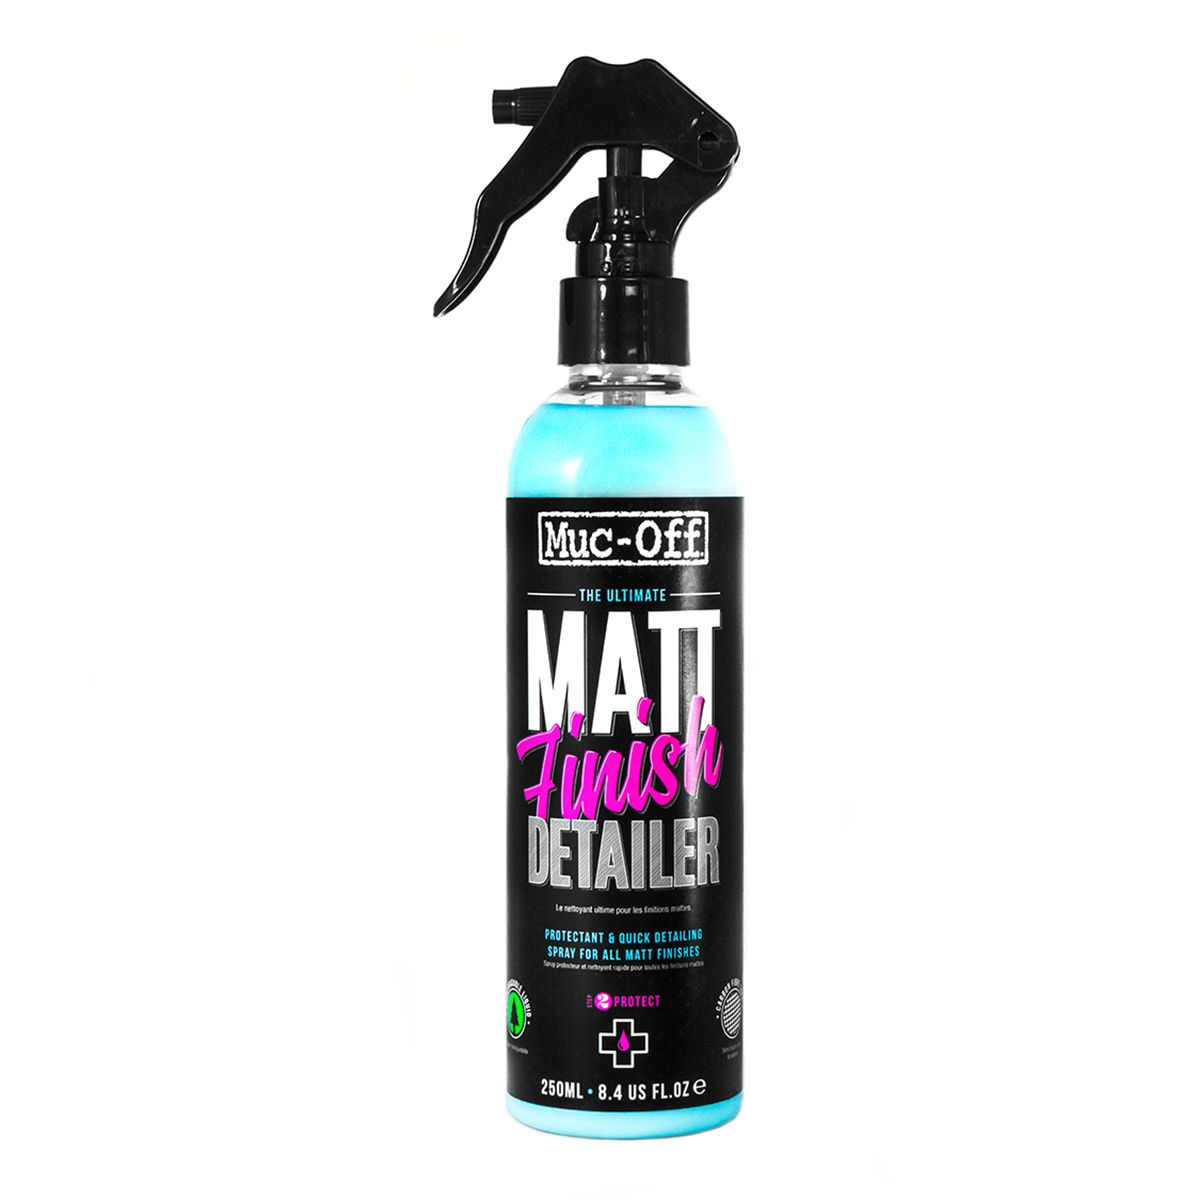 Muc-Off Matt Finish Detailer protectant and quick detailing spray | Body maintenance